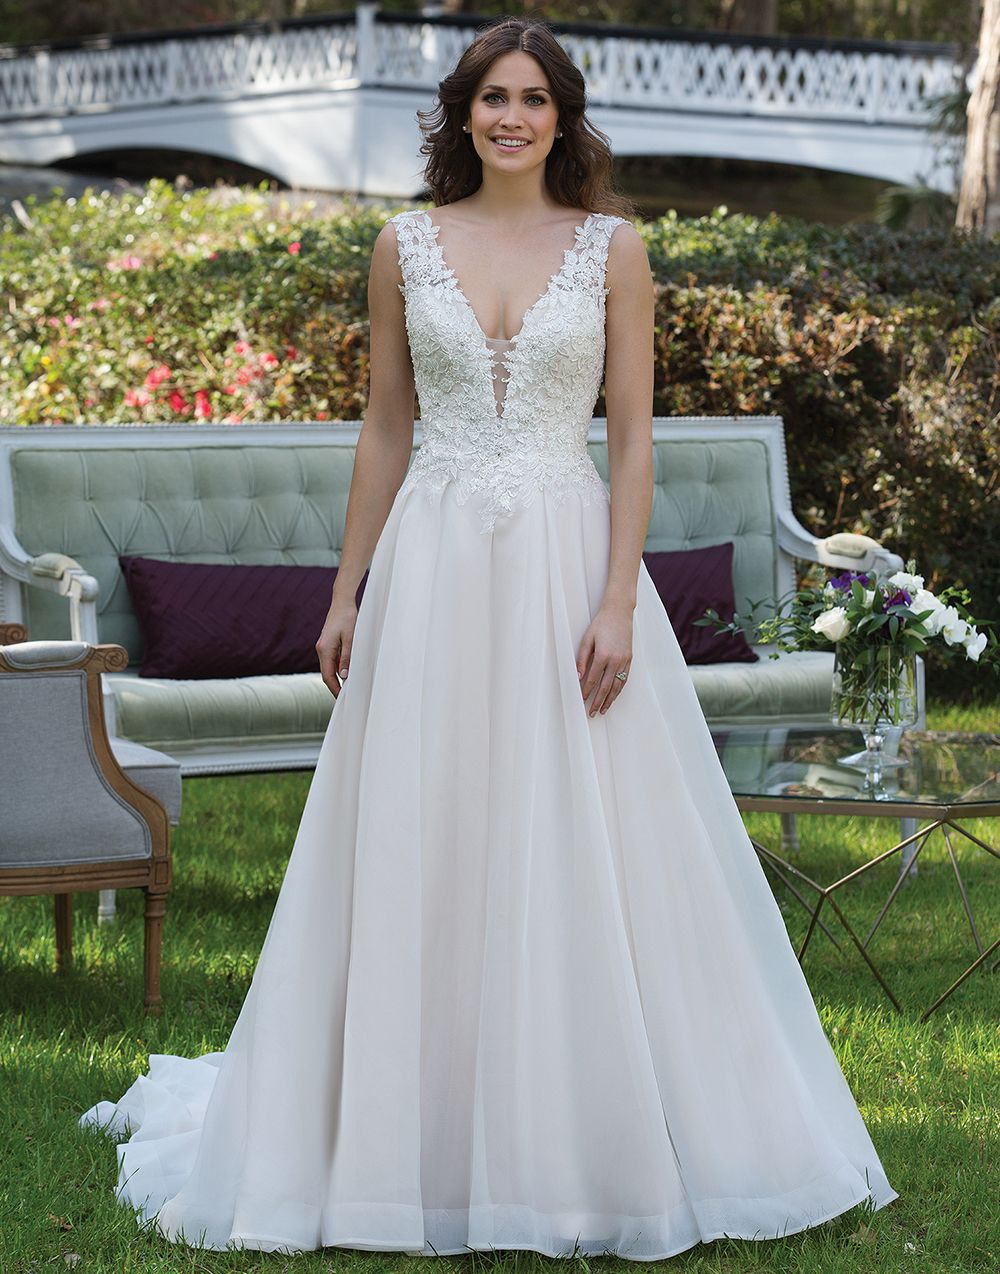 Sincerity wedding dress style 3941 this v neck ball gown features sincerity wedding dress style 3941 this v neck ball gown features beaded appliques a basque waistline low back and english net skirt ombrellifo Choice Image